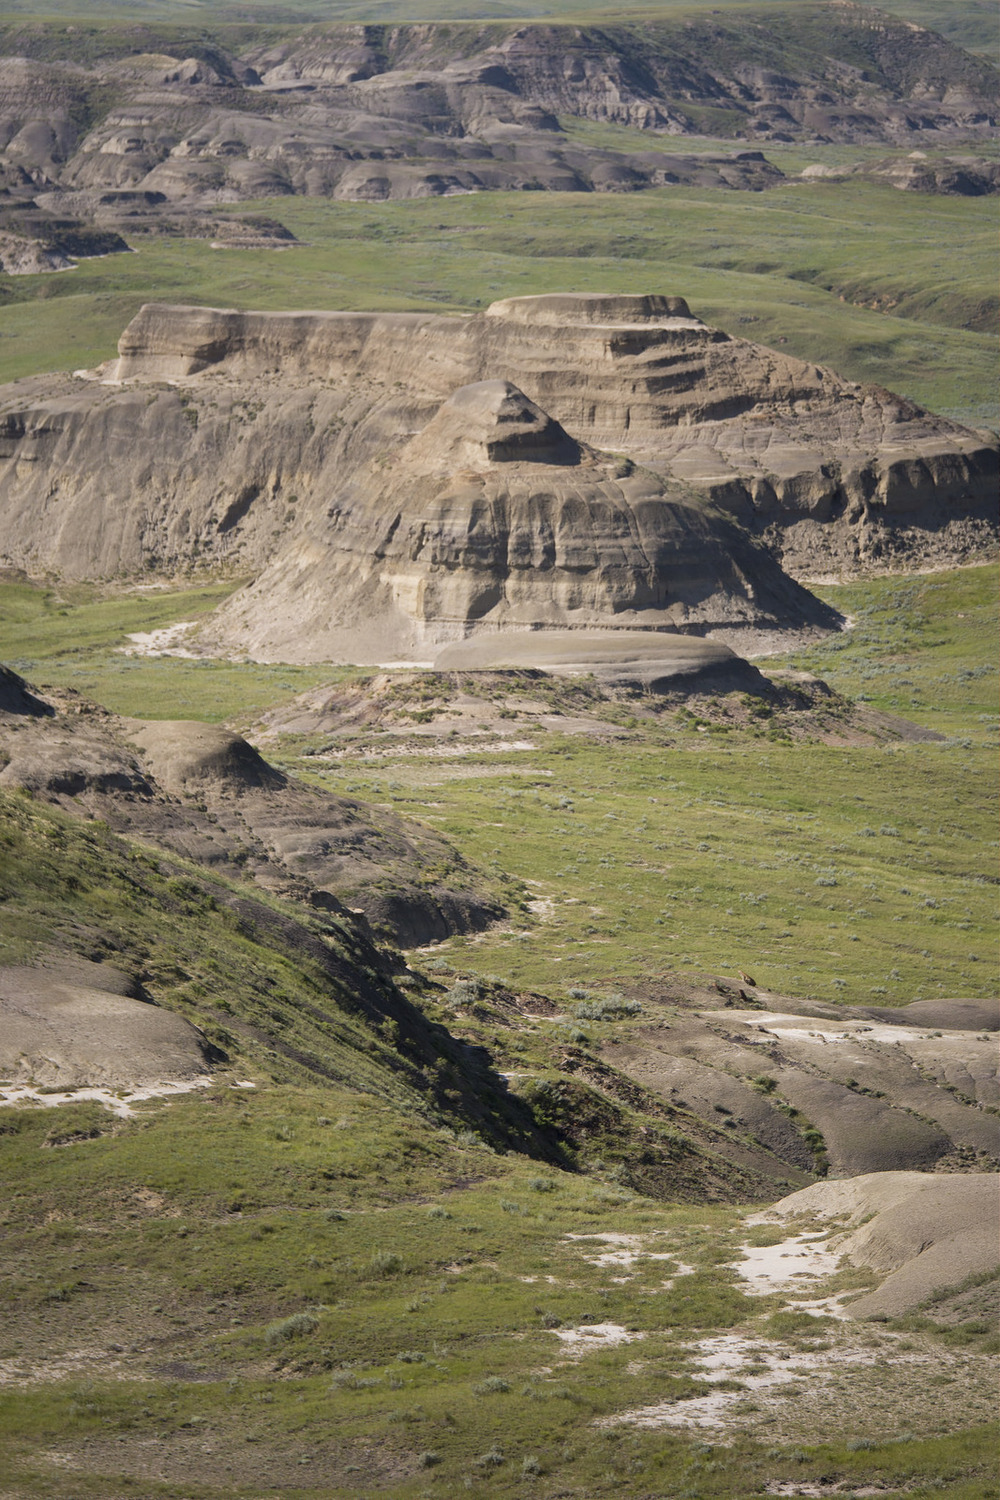 Although rainfall is infrequent here, torrential downpours and meltwater in the spring continuously erode the badlands' steep slopes, coullees and valleys.